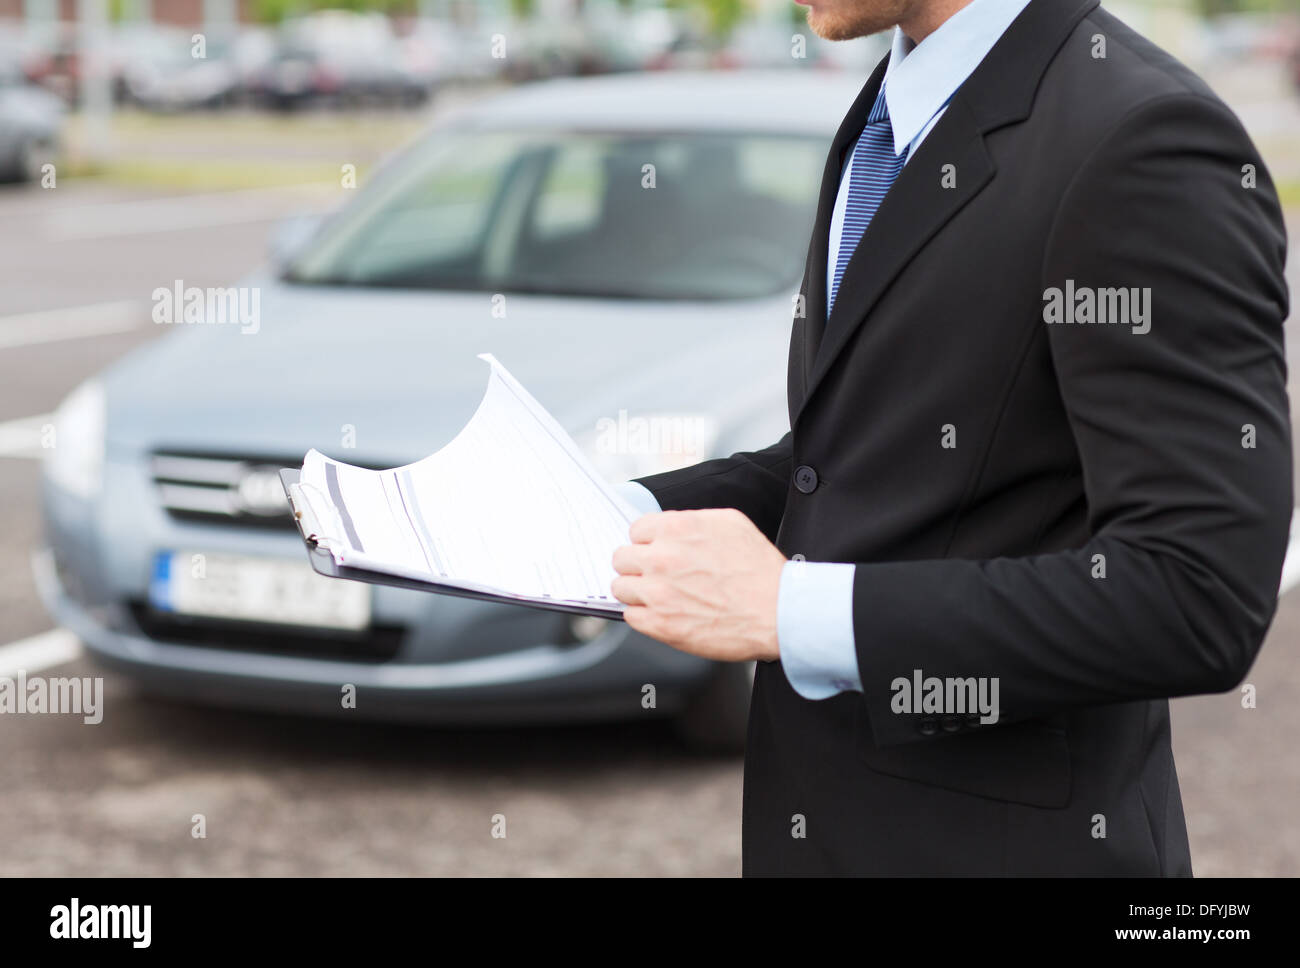 Man With Car Documents Outside - Stock Image